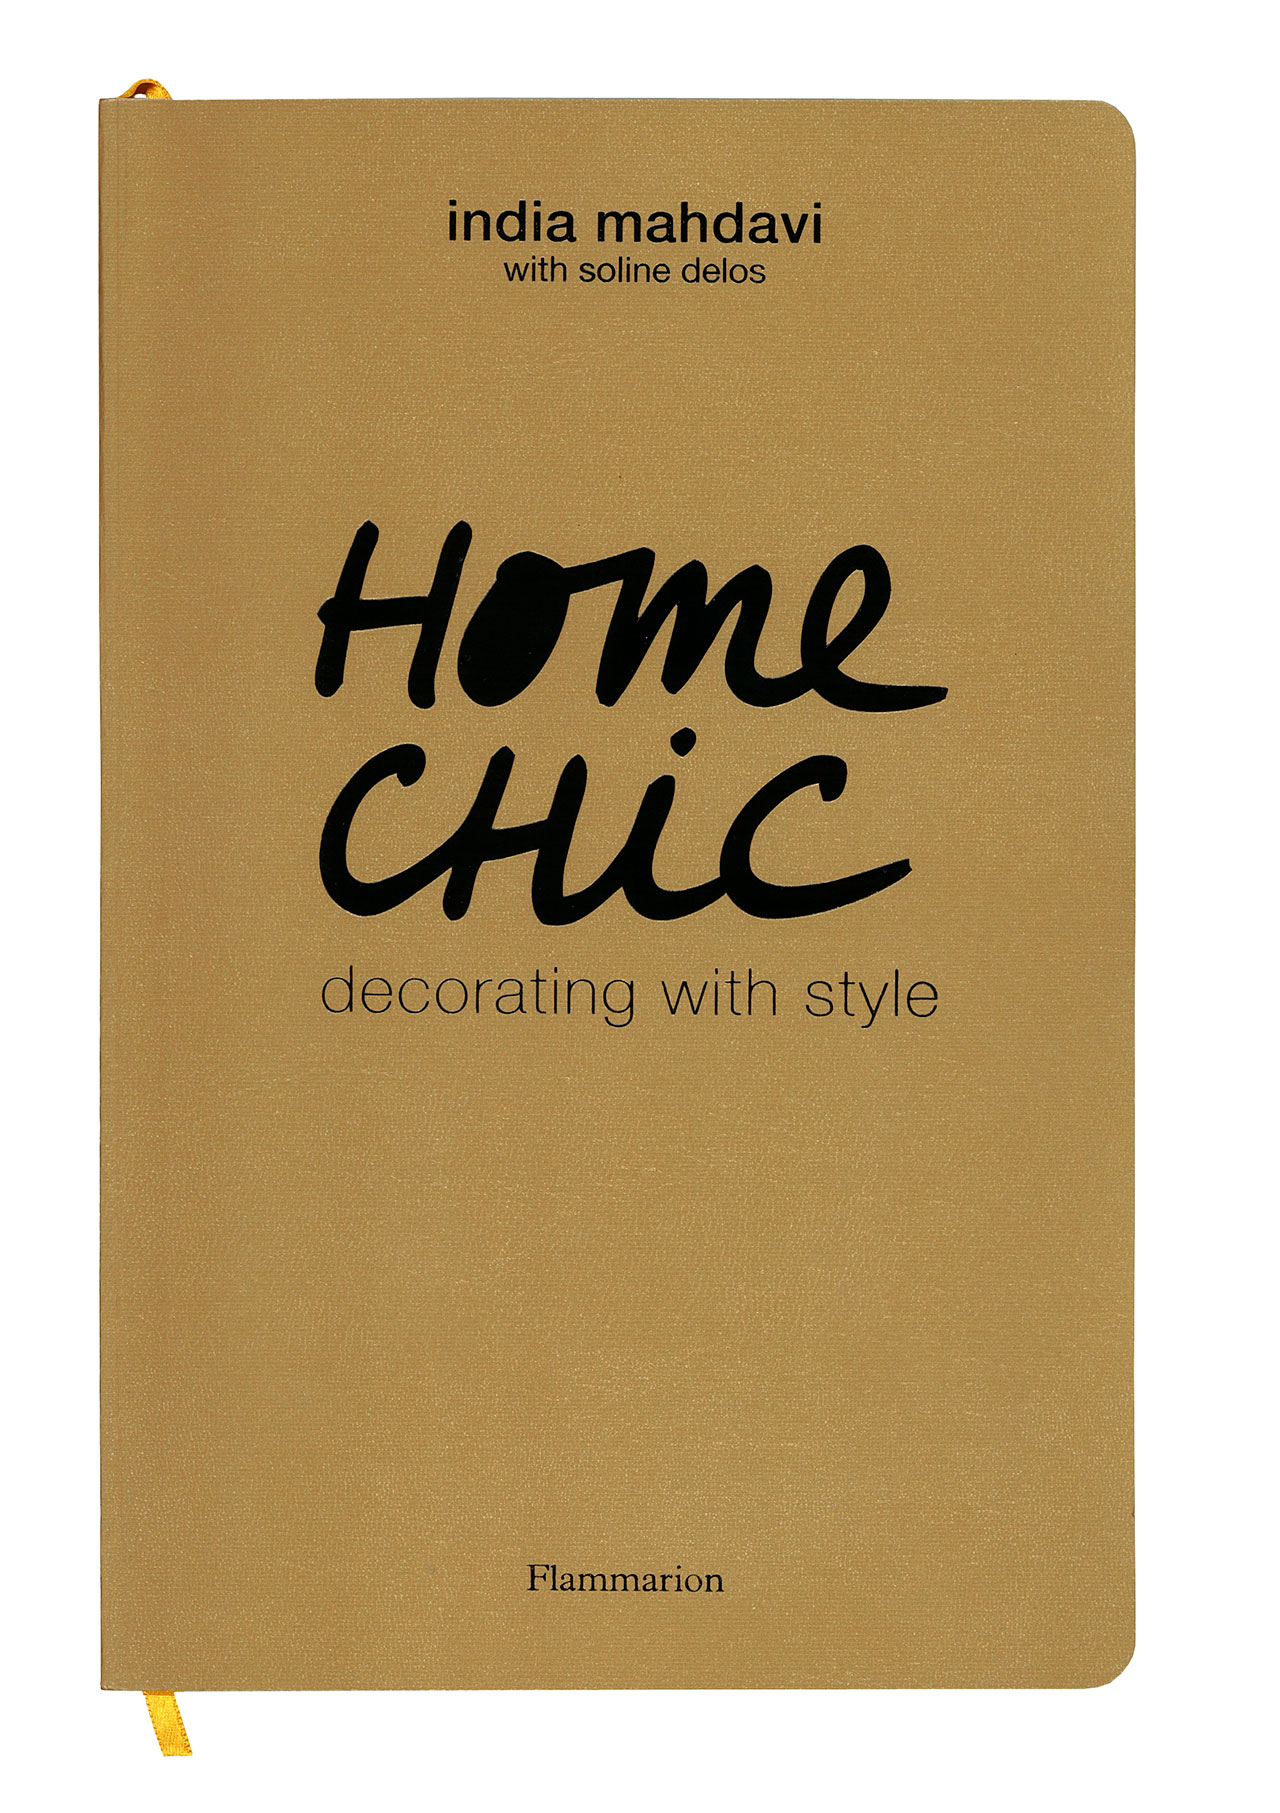 HOME CHIC book cover, photo © Flammarion.